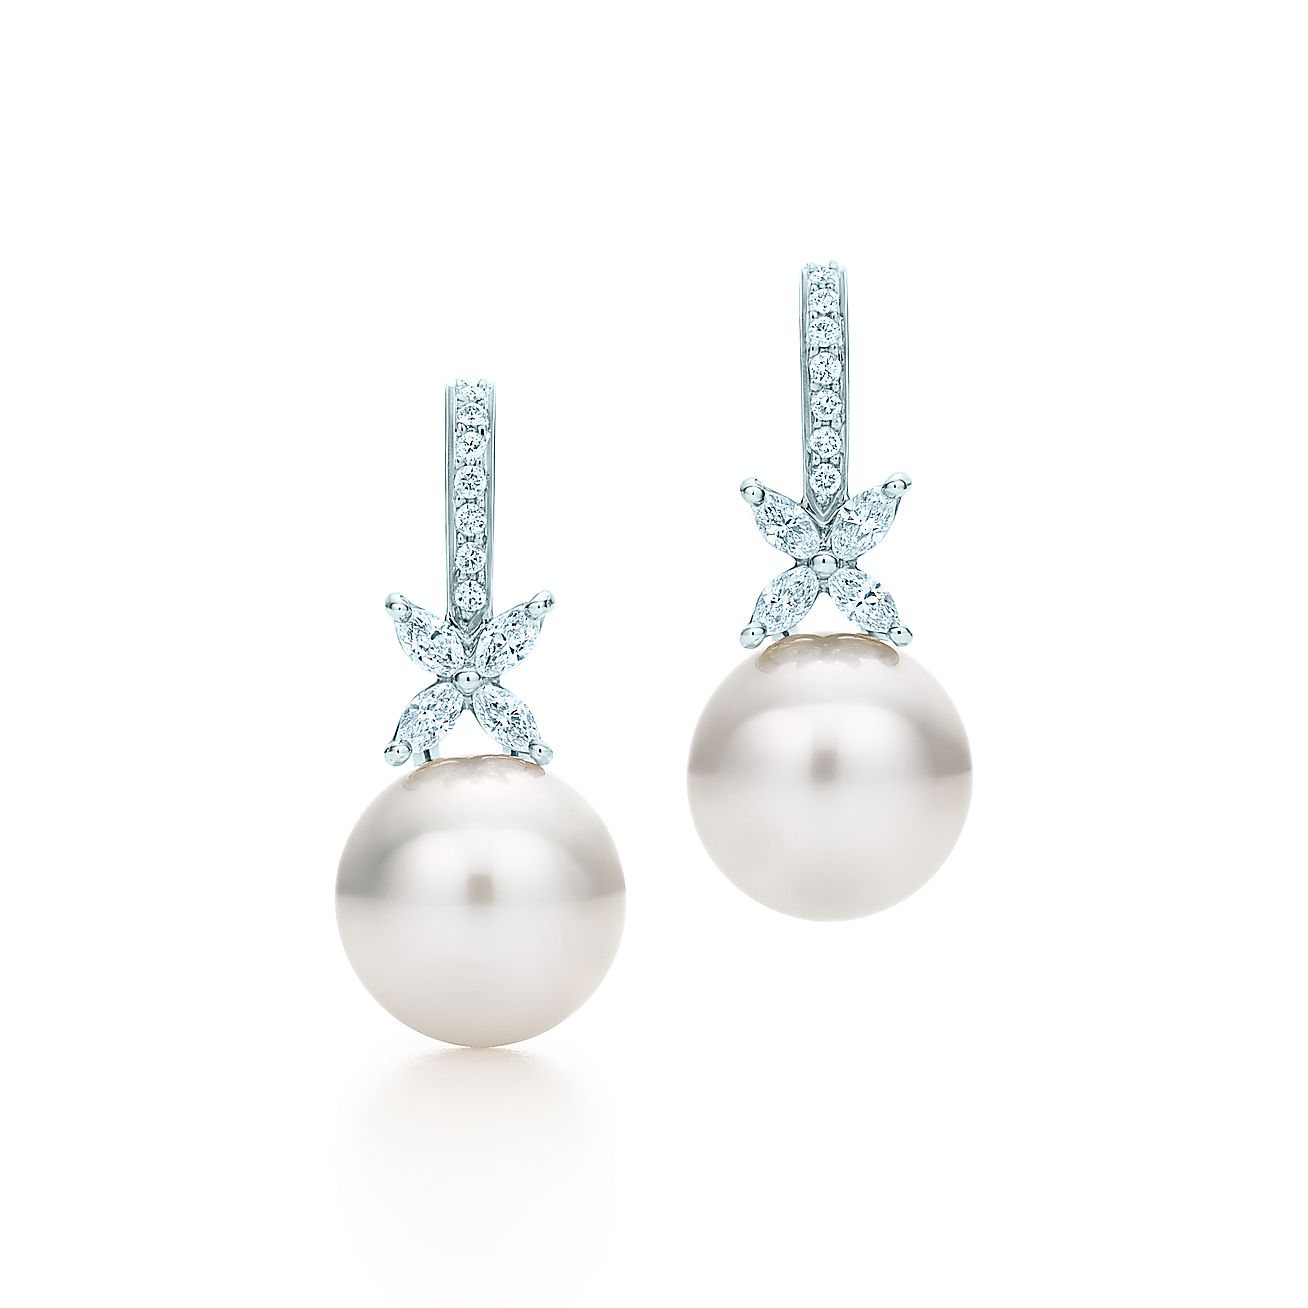 Tiffany Victoria Earrings In Platinum With South Sea Pearls And Diamonds Co